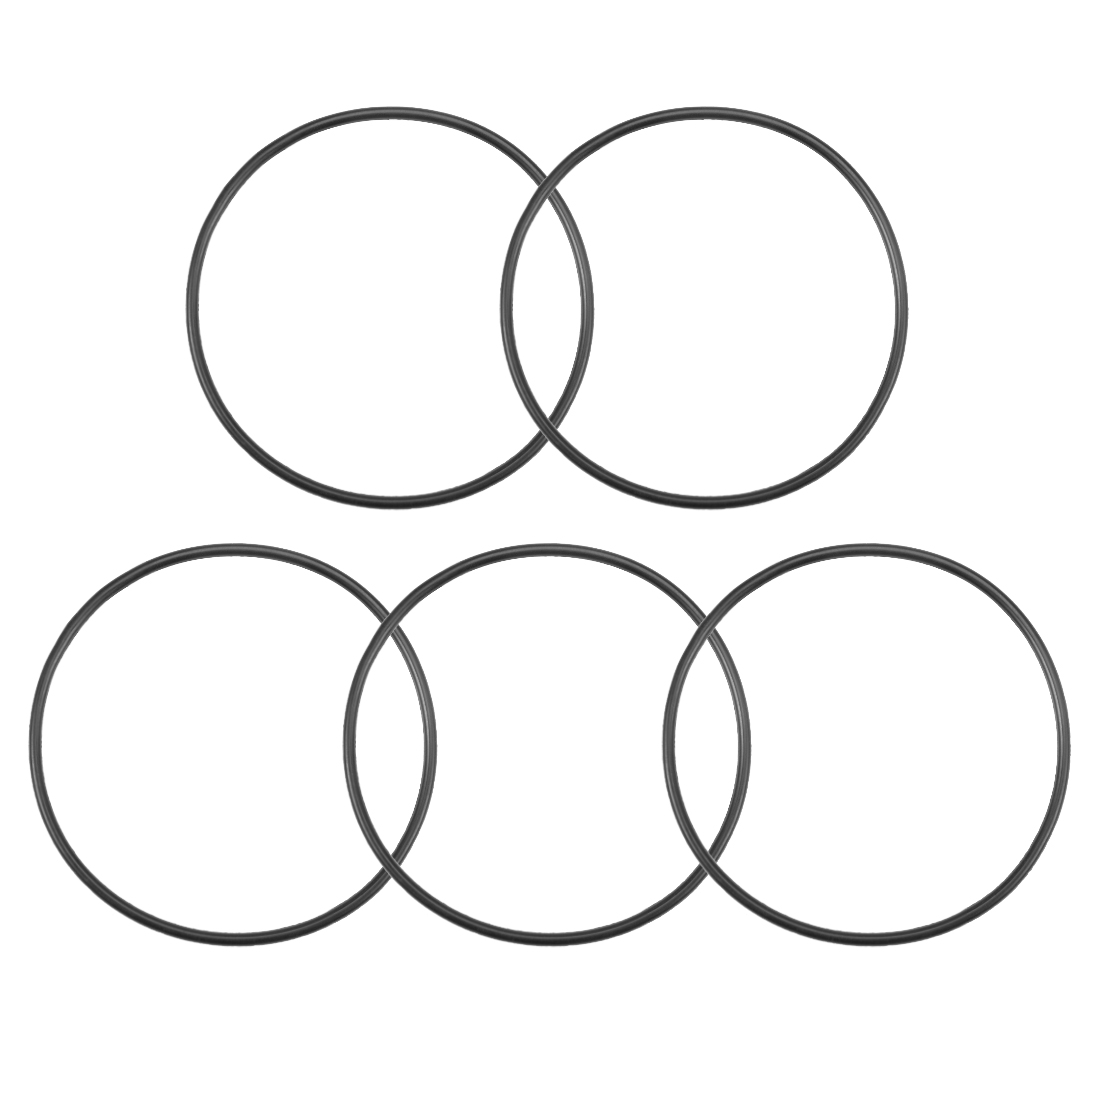 O-Rings Nitrile Rubber 75mm x 80.3mm x 2.65mm Round Seal Gasket 5 Pcs